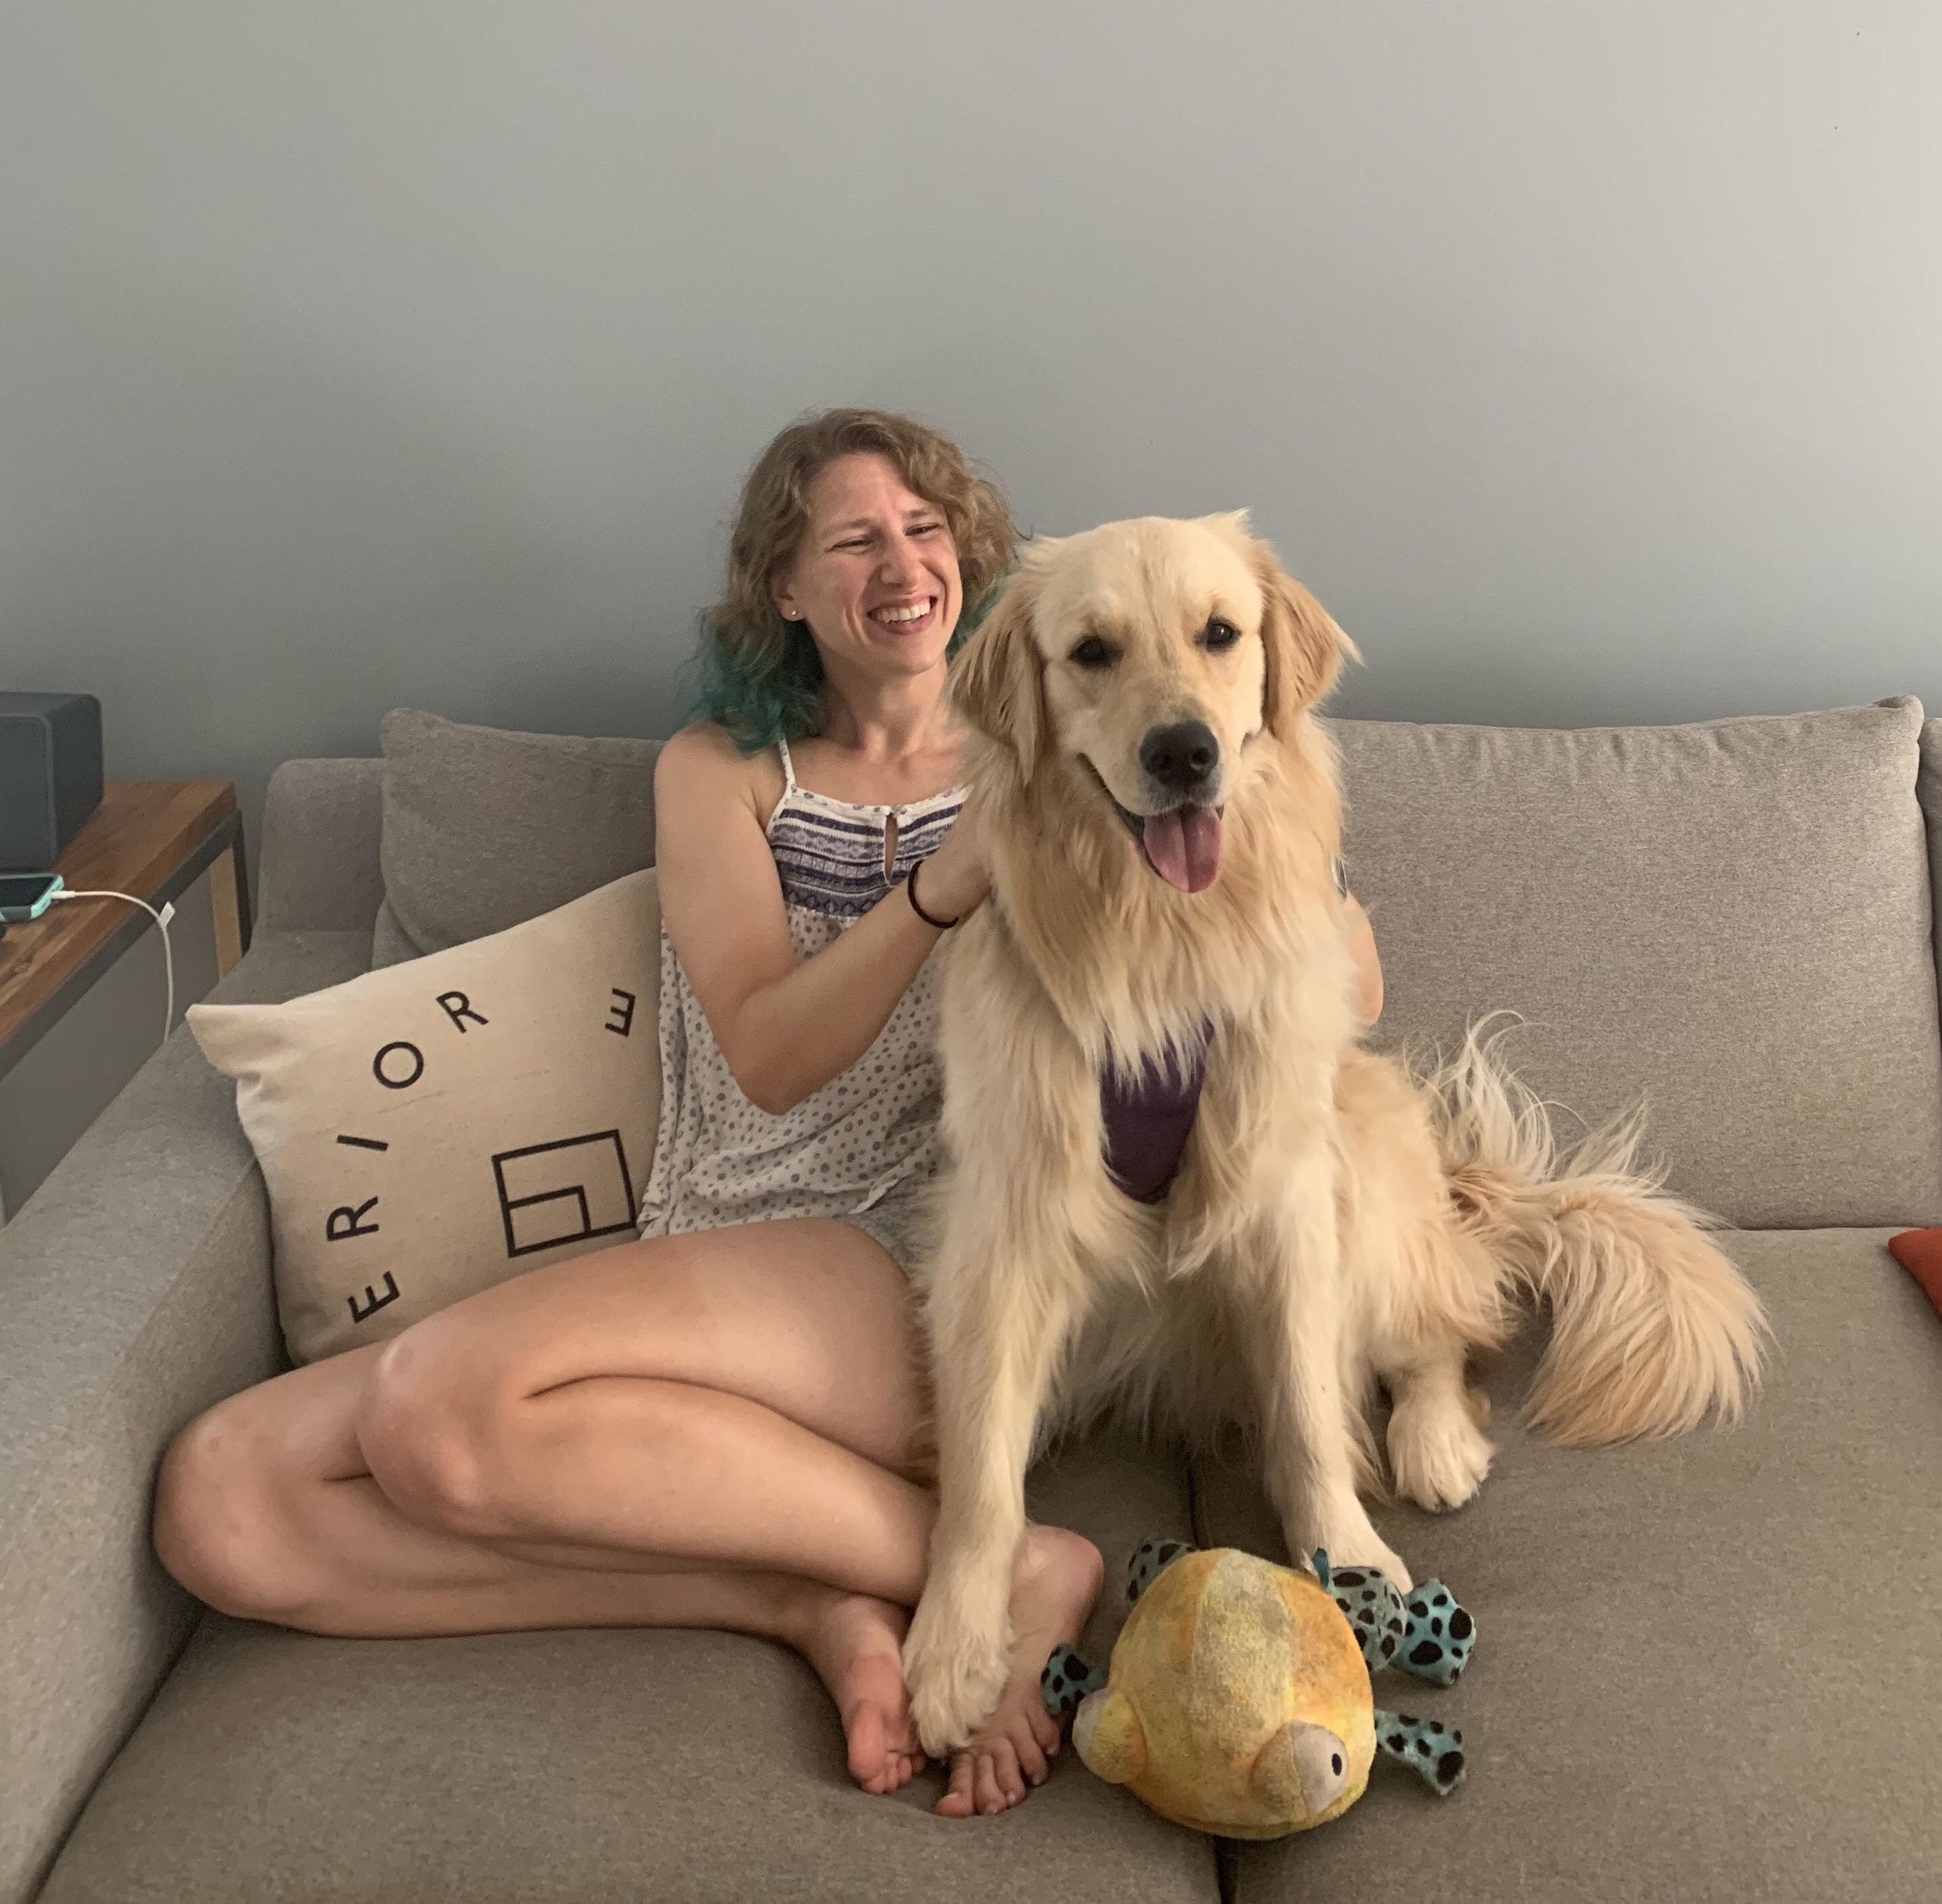 Chillin' on the couch with my new best friend